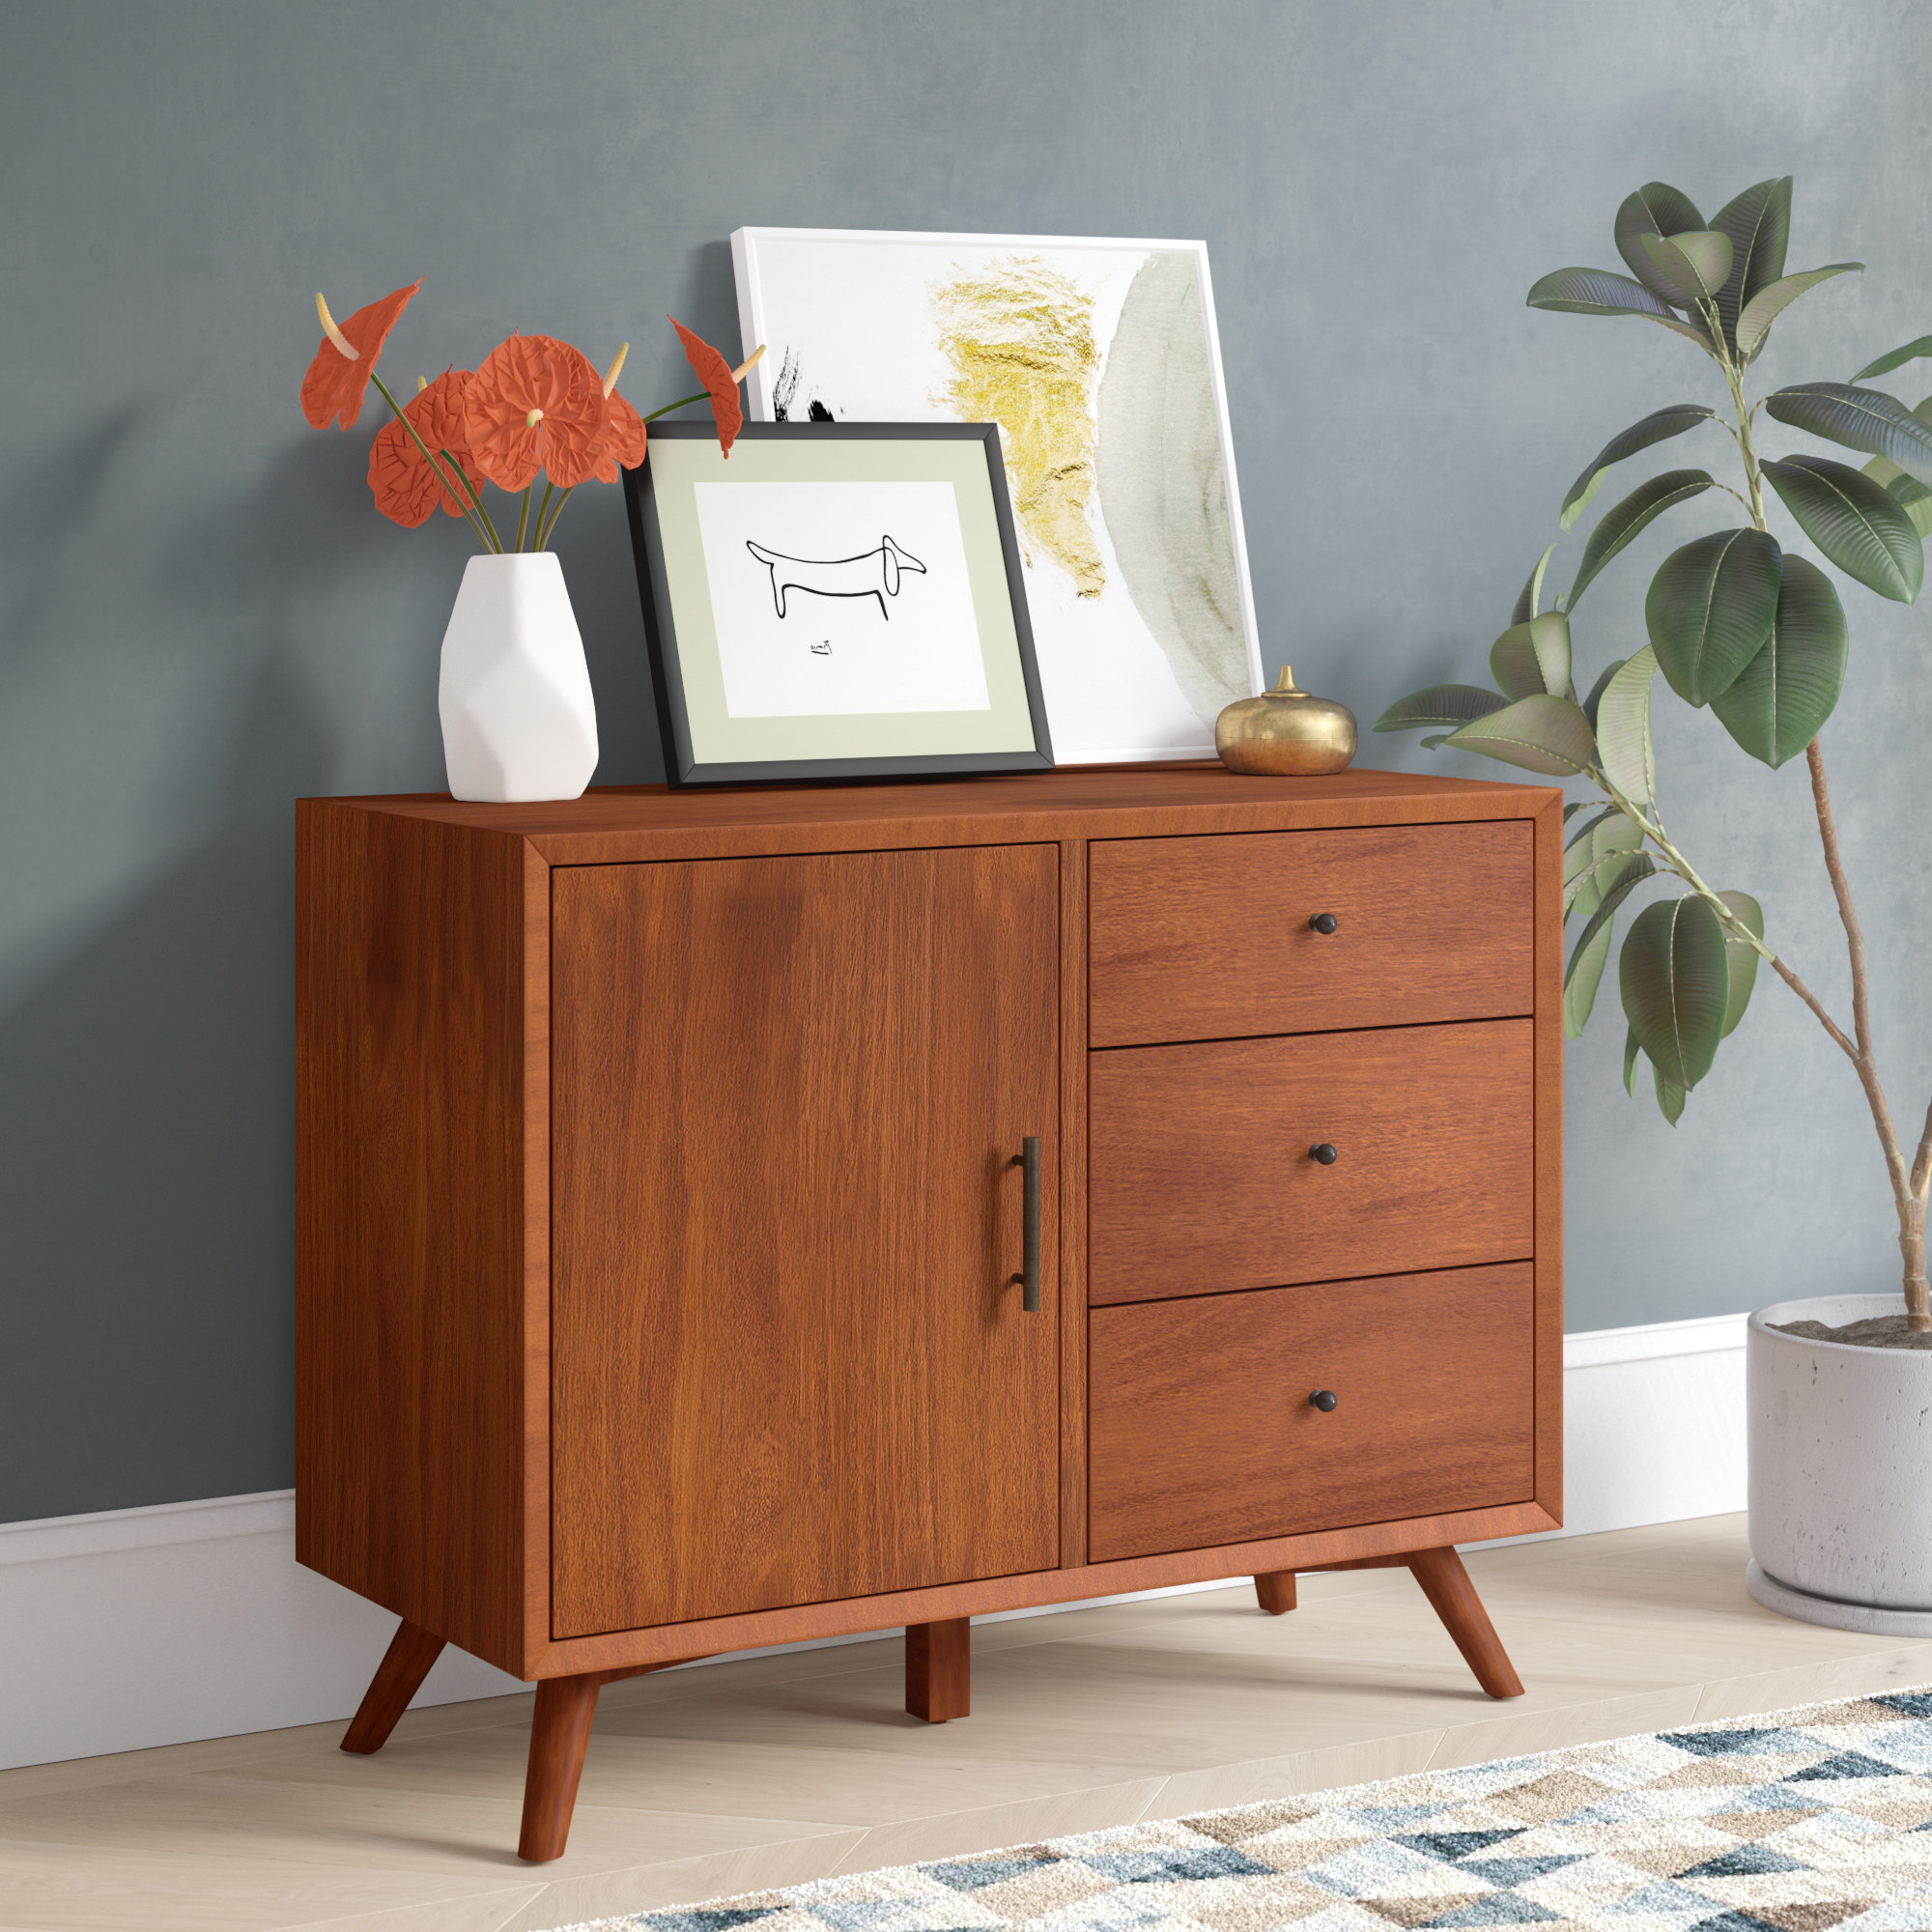 3 Drawer Credenza | Wayfair Regarding Giulia 3 Drawer Credenzas (Gallery 6 of 20)